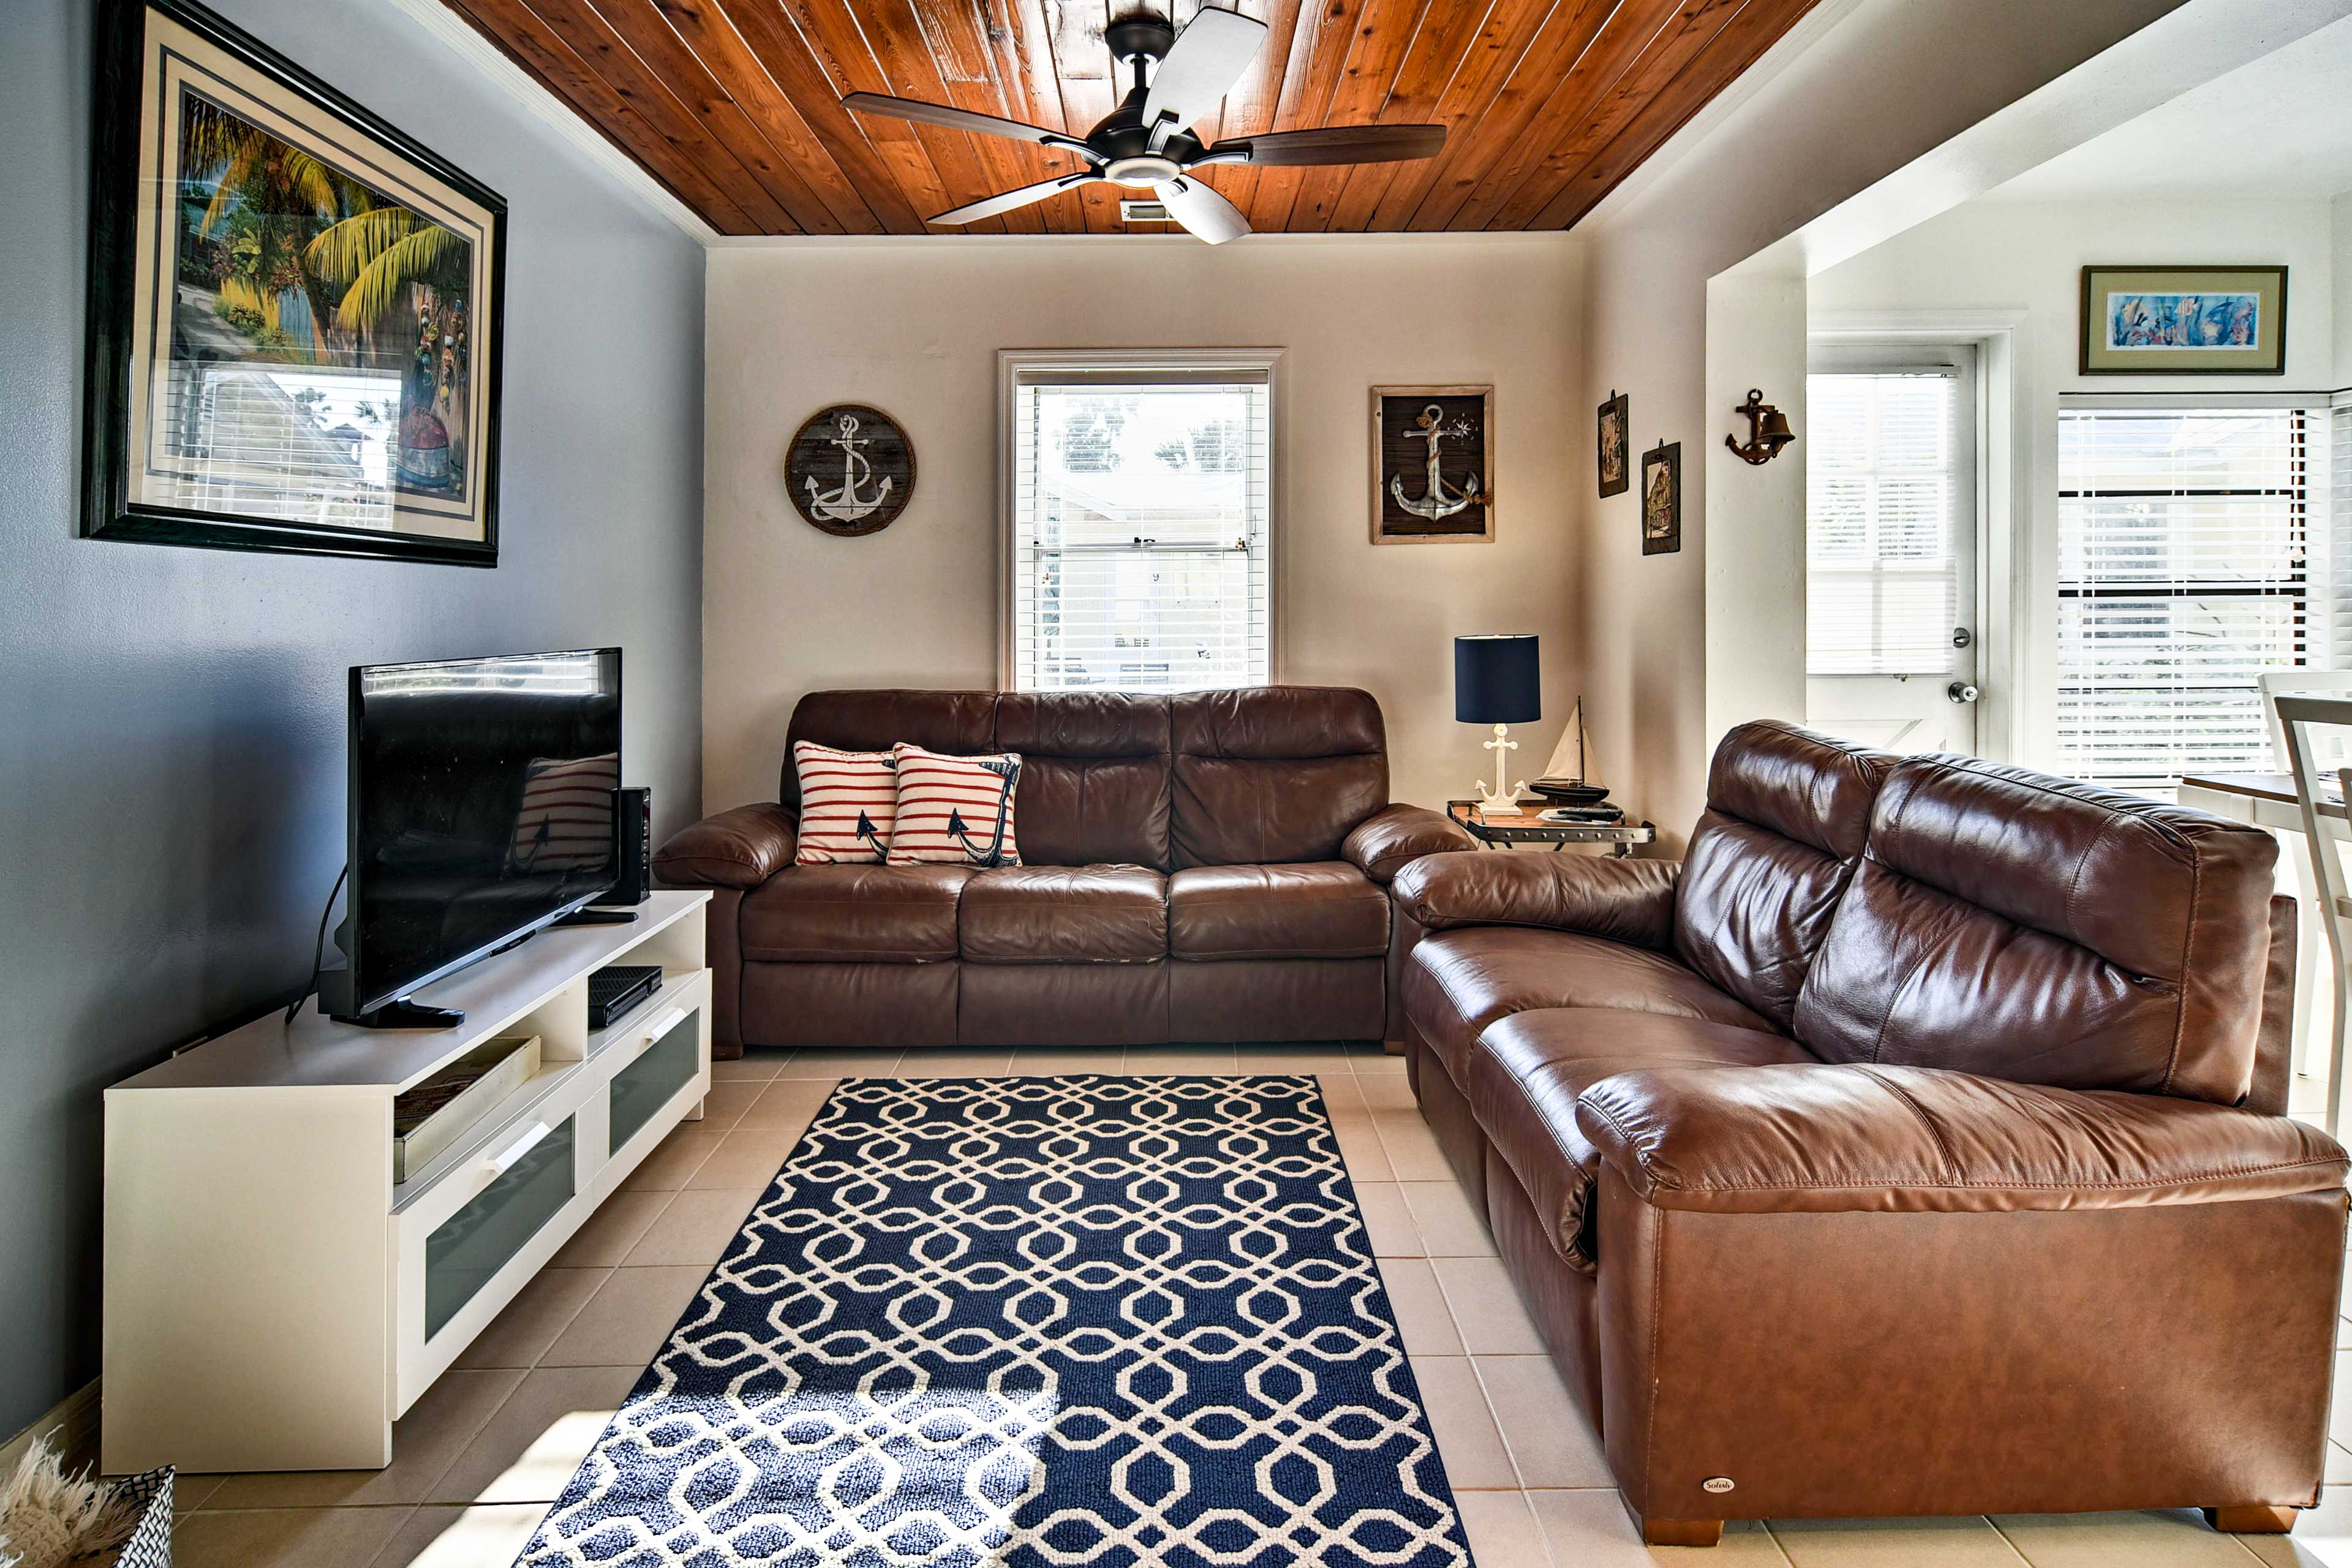 Explore Indian Shores from this newly remodeled vacation rental cottage!